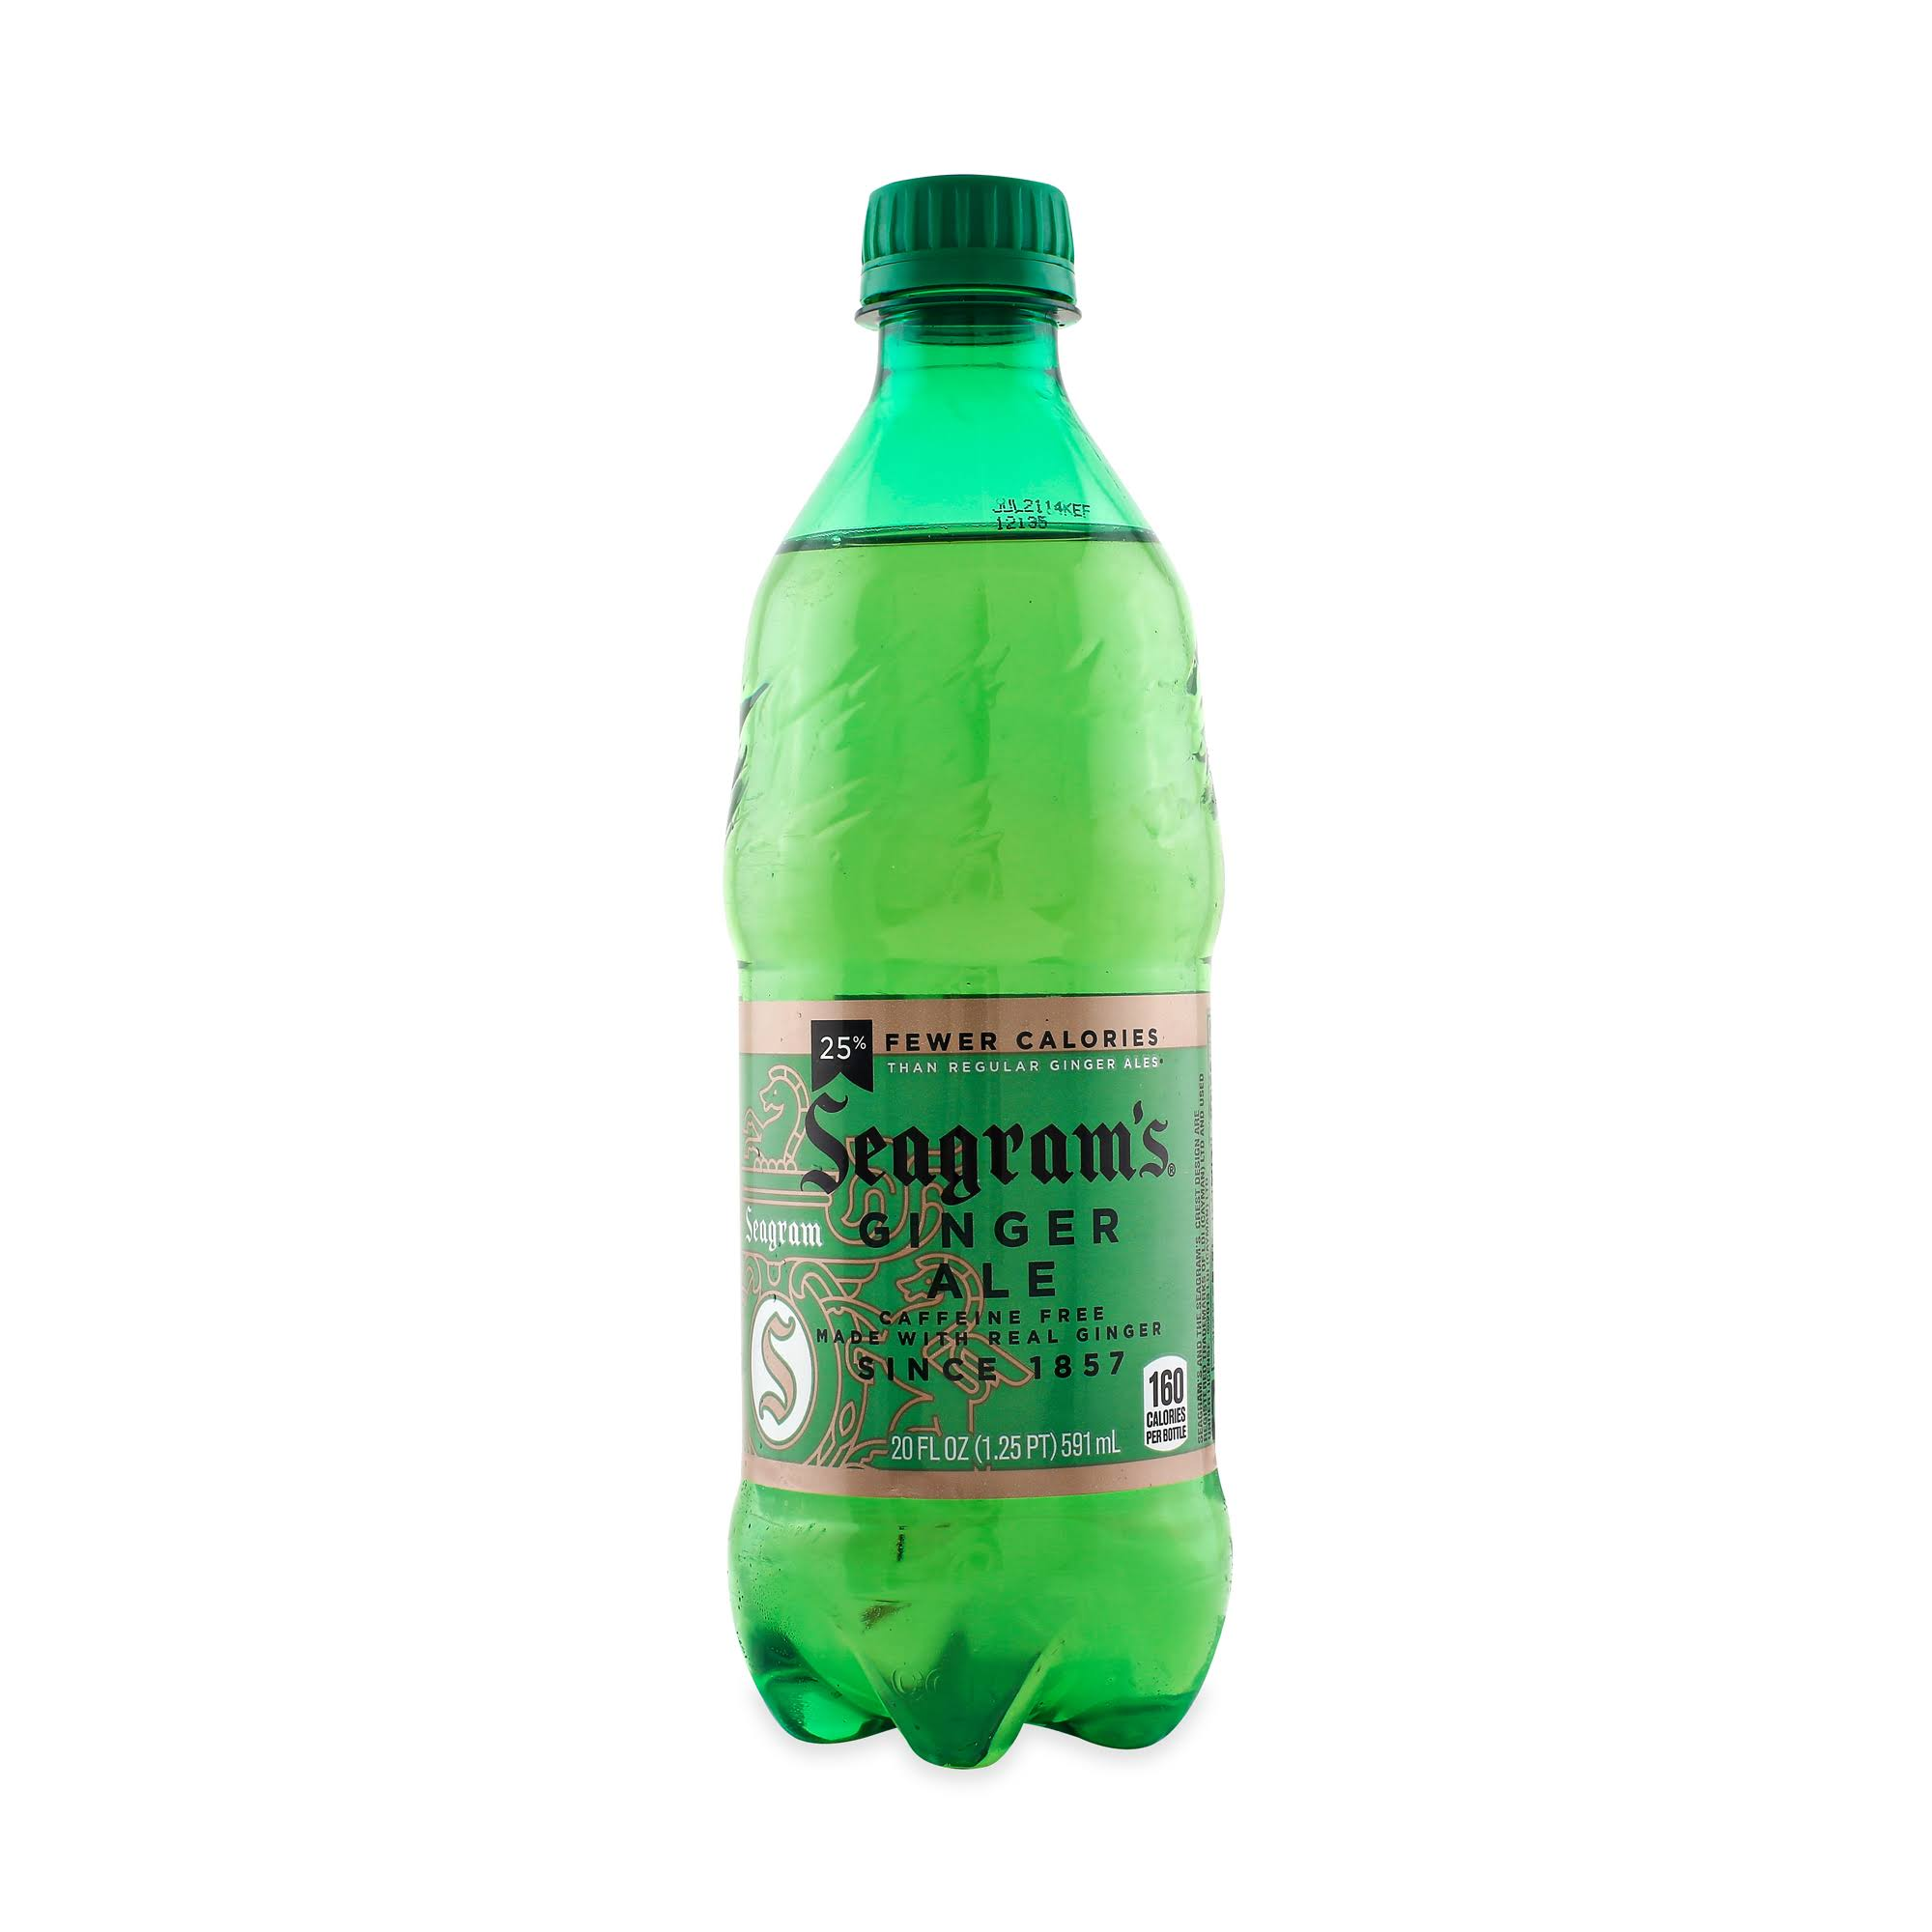 Seagram's Ginger Ale - 20 fl oz